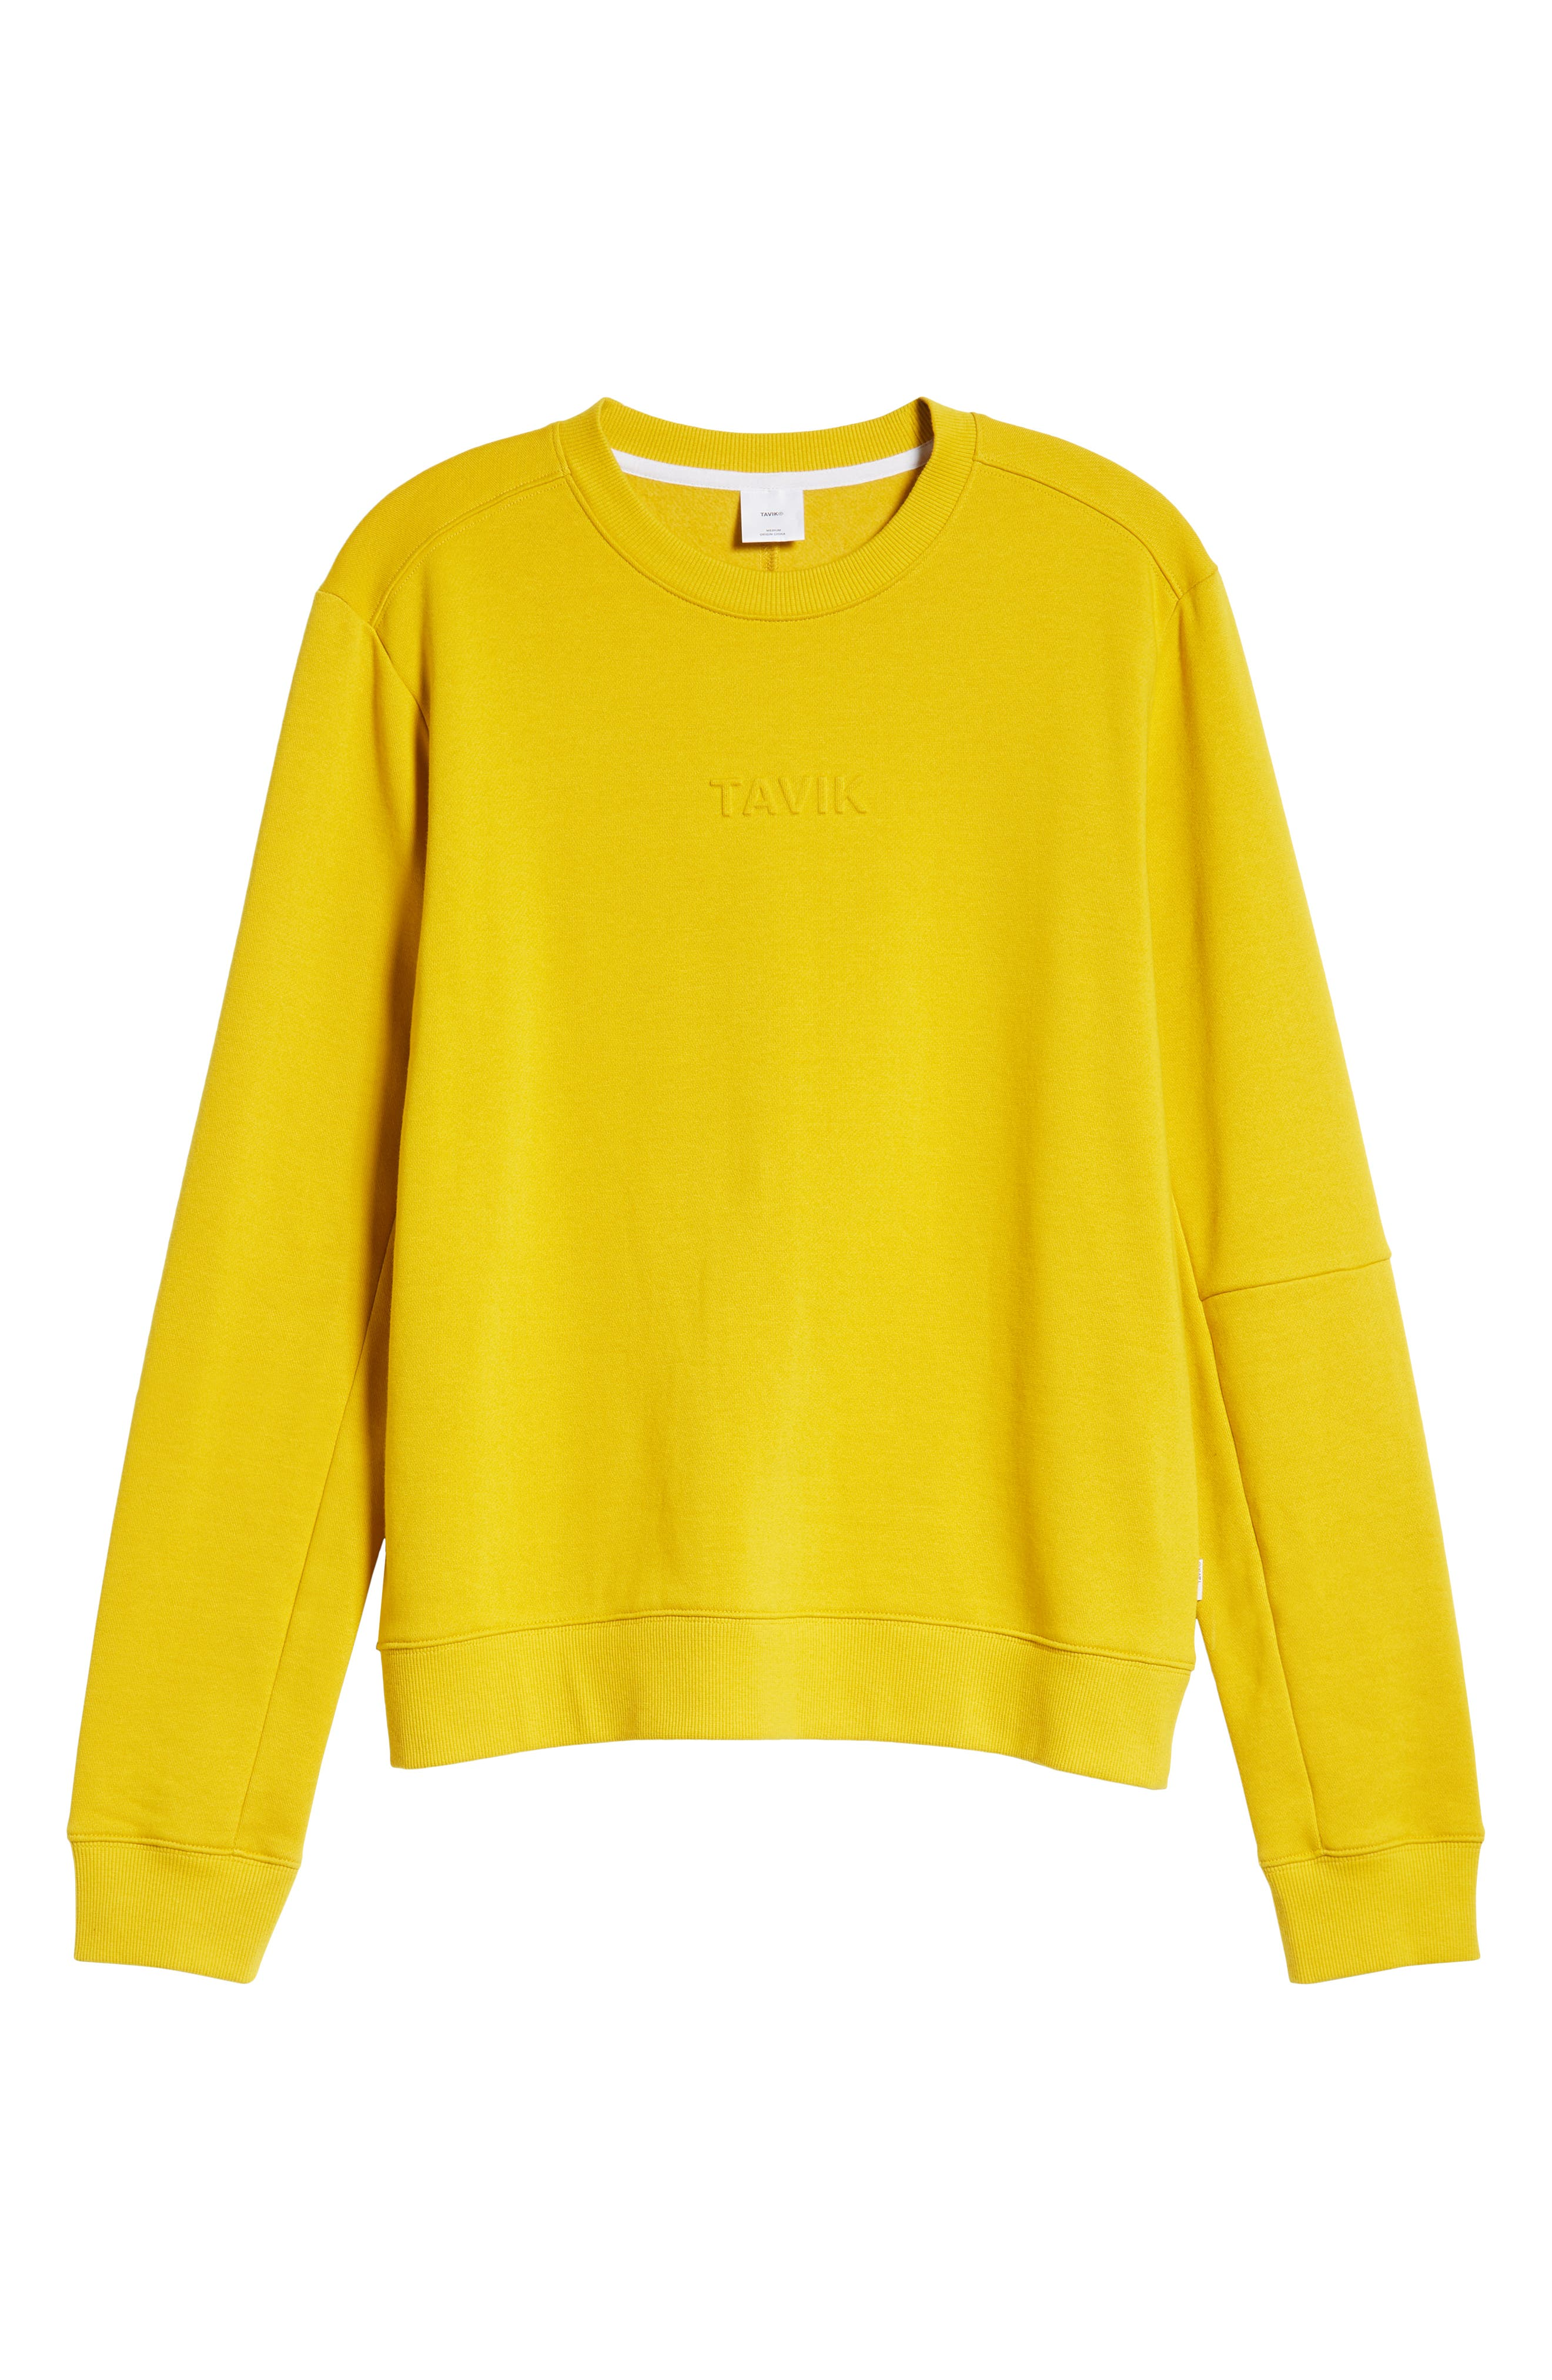 Loma Sweatshirt,                             Alternate thumbnail 6, color,                             MUSTARD YELLOW